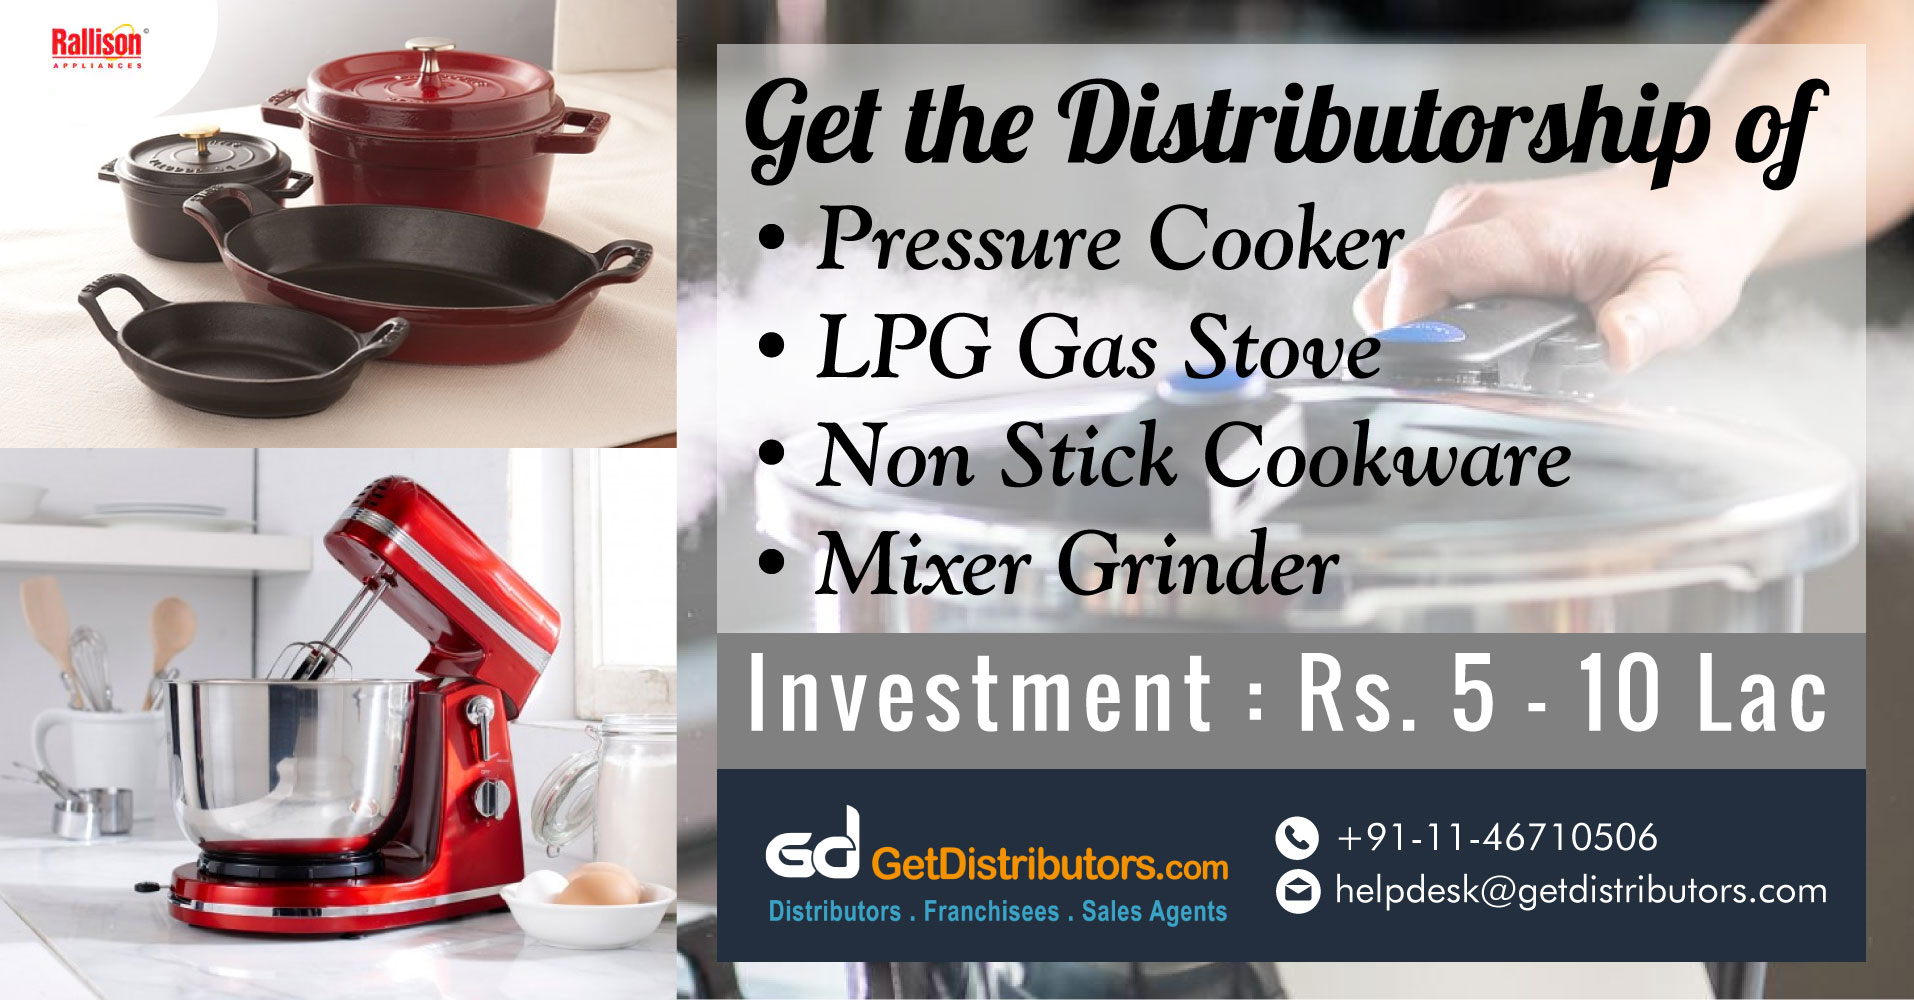 How To Get Distributorship Of Kitchen Appliances?